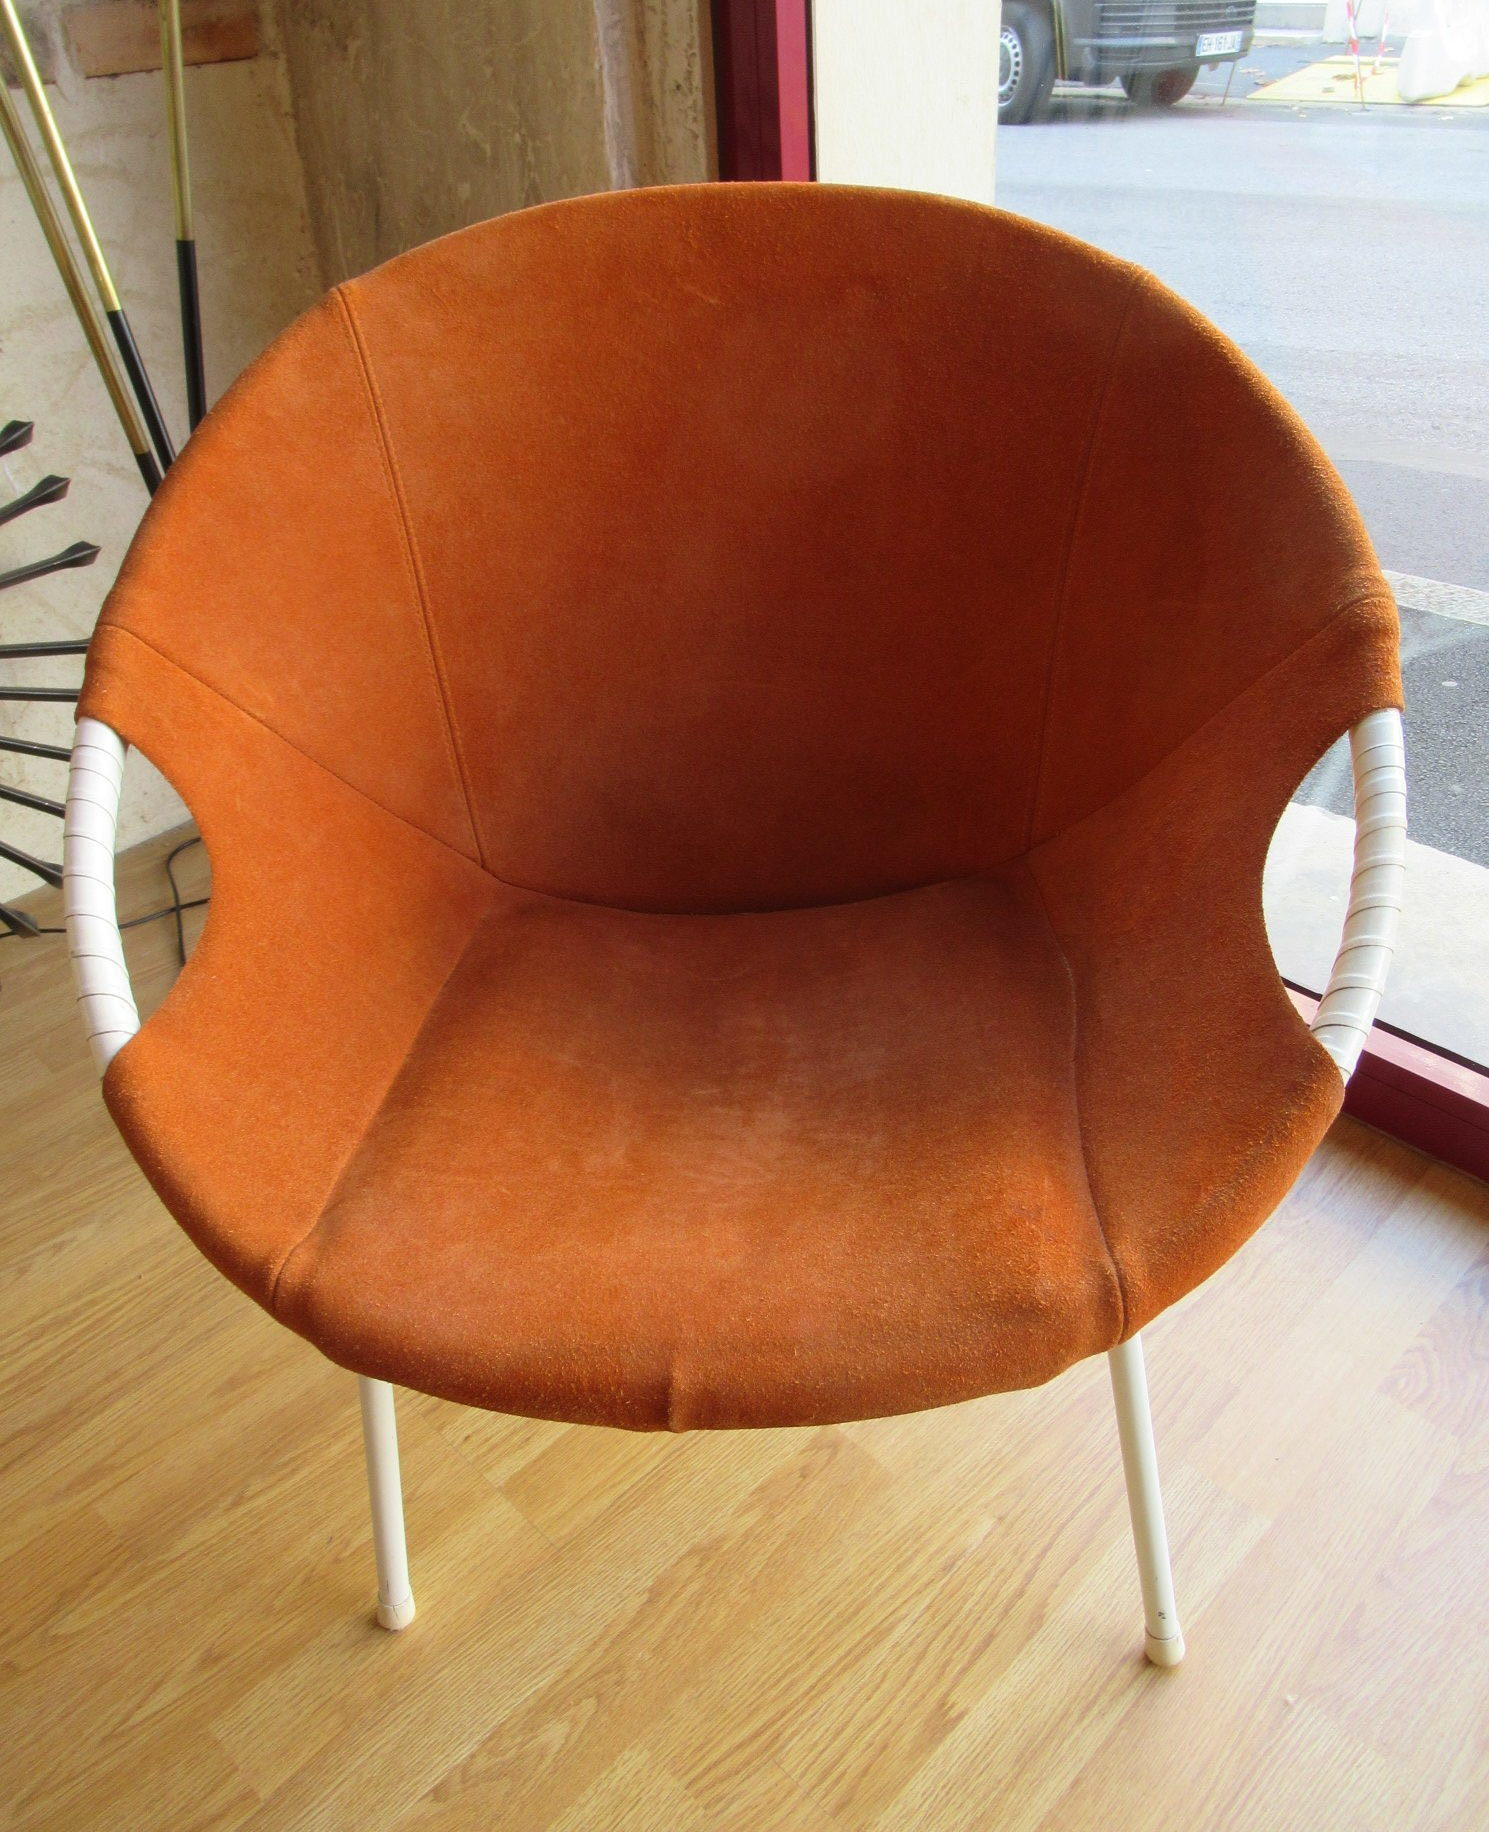 – Design Coeur Fauteuil Scandinave Sixties L'attrape Corbeille bDYeWHIE29